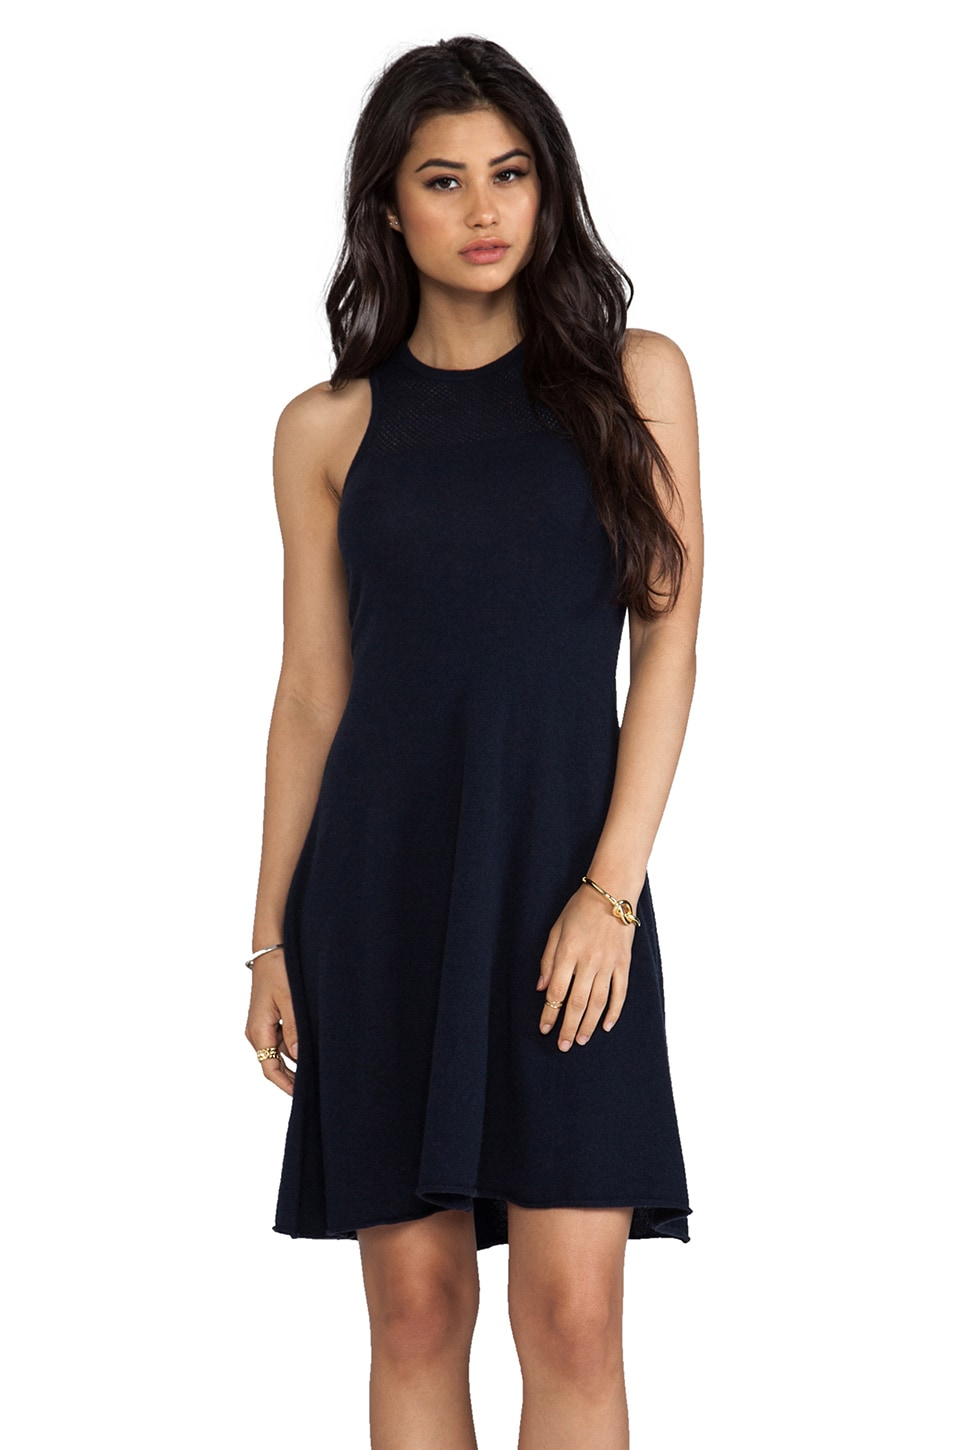 Autumn Cashmere Mesh Flare Dress in Navy